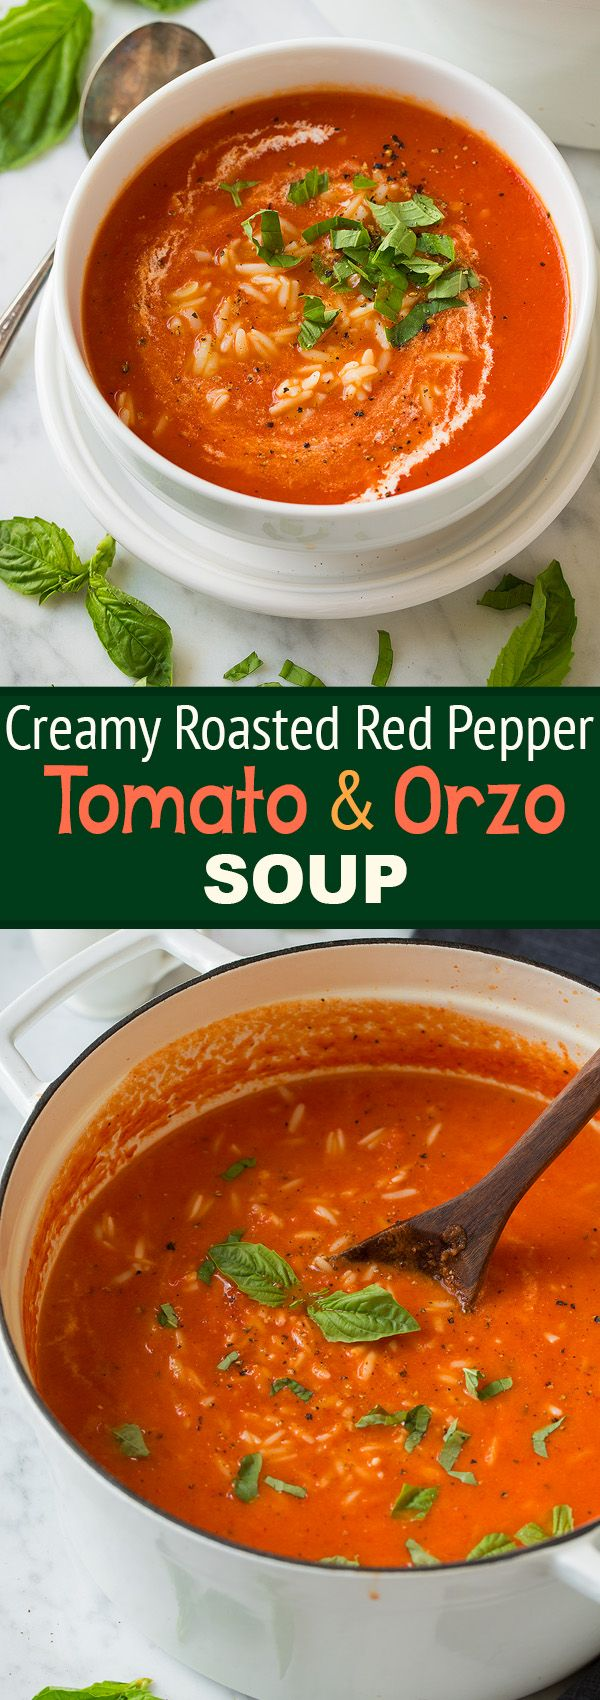 Creamy Roasted Red Pepper Tomato and Orzo Soup - We loved this soup!